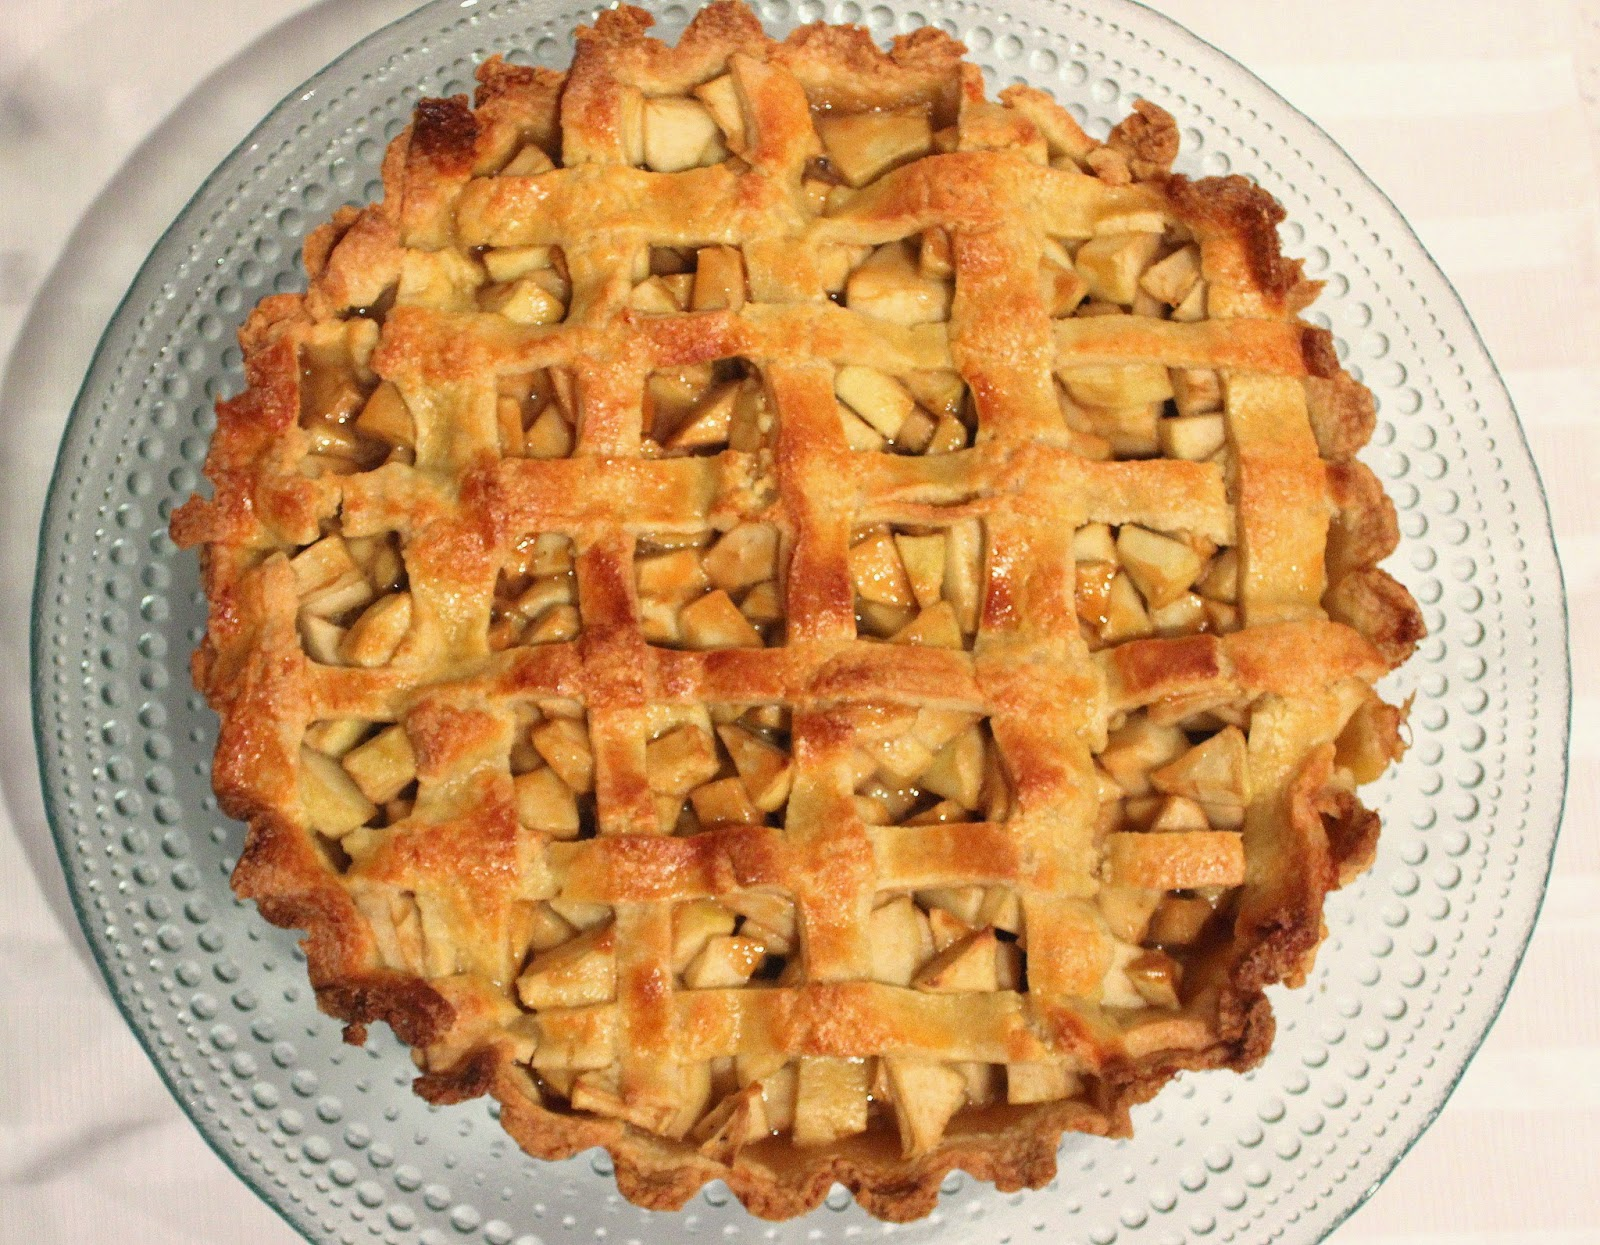 PicNic: Caramel Apple Pie